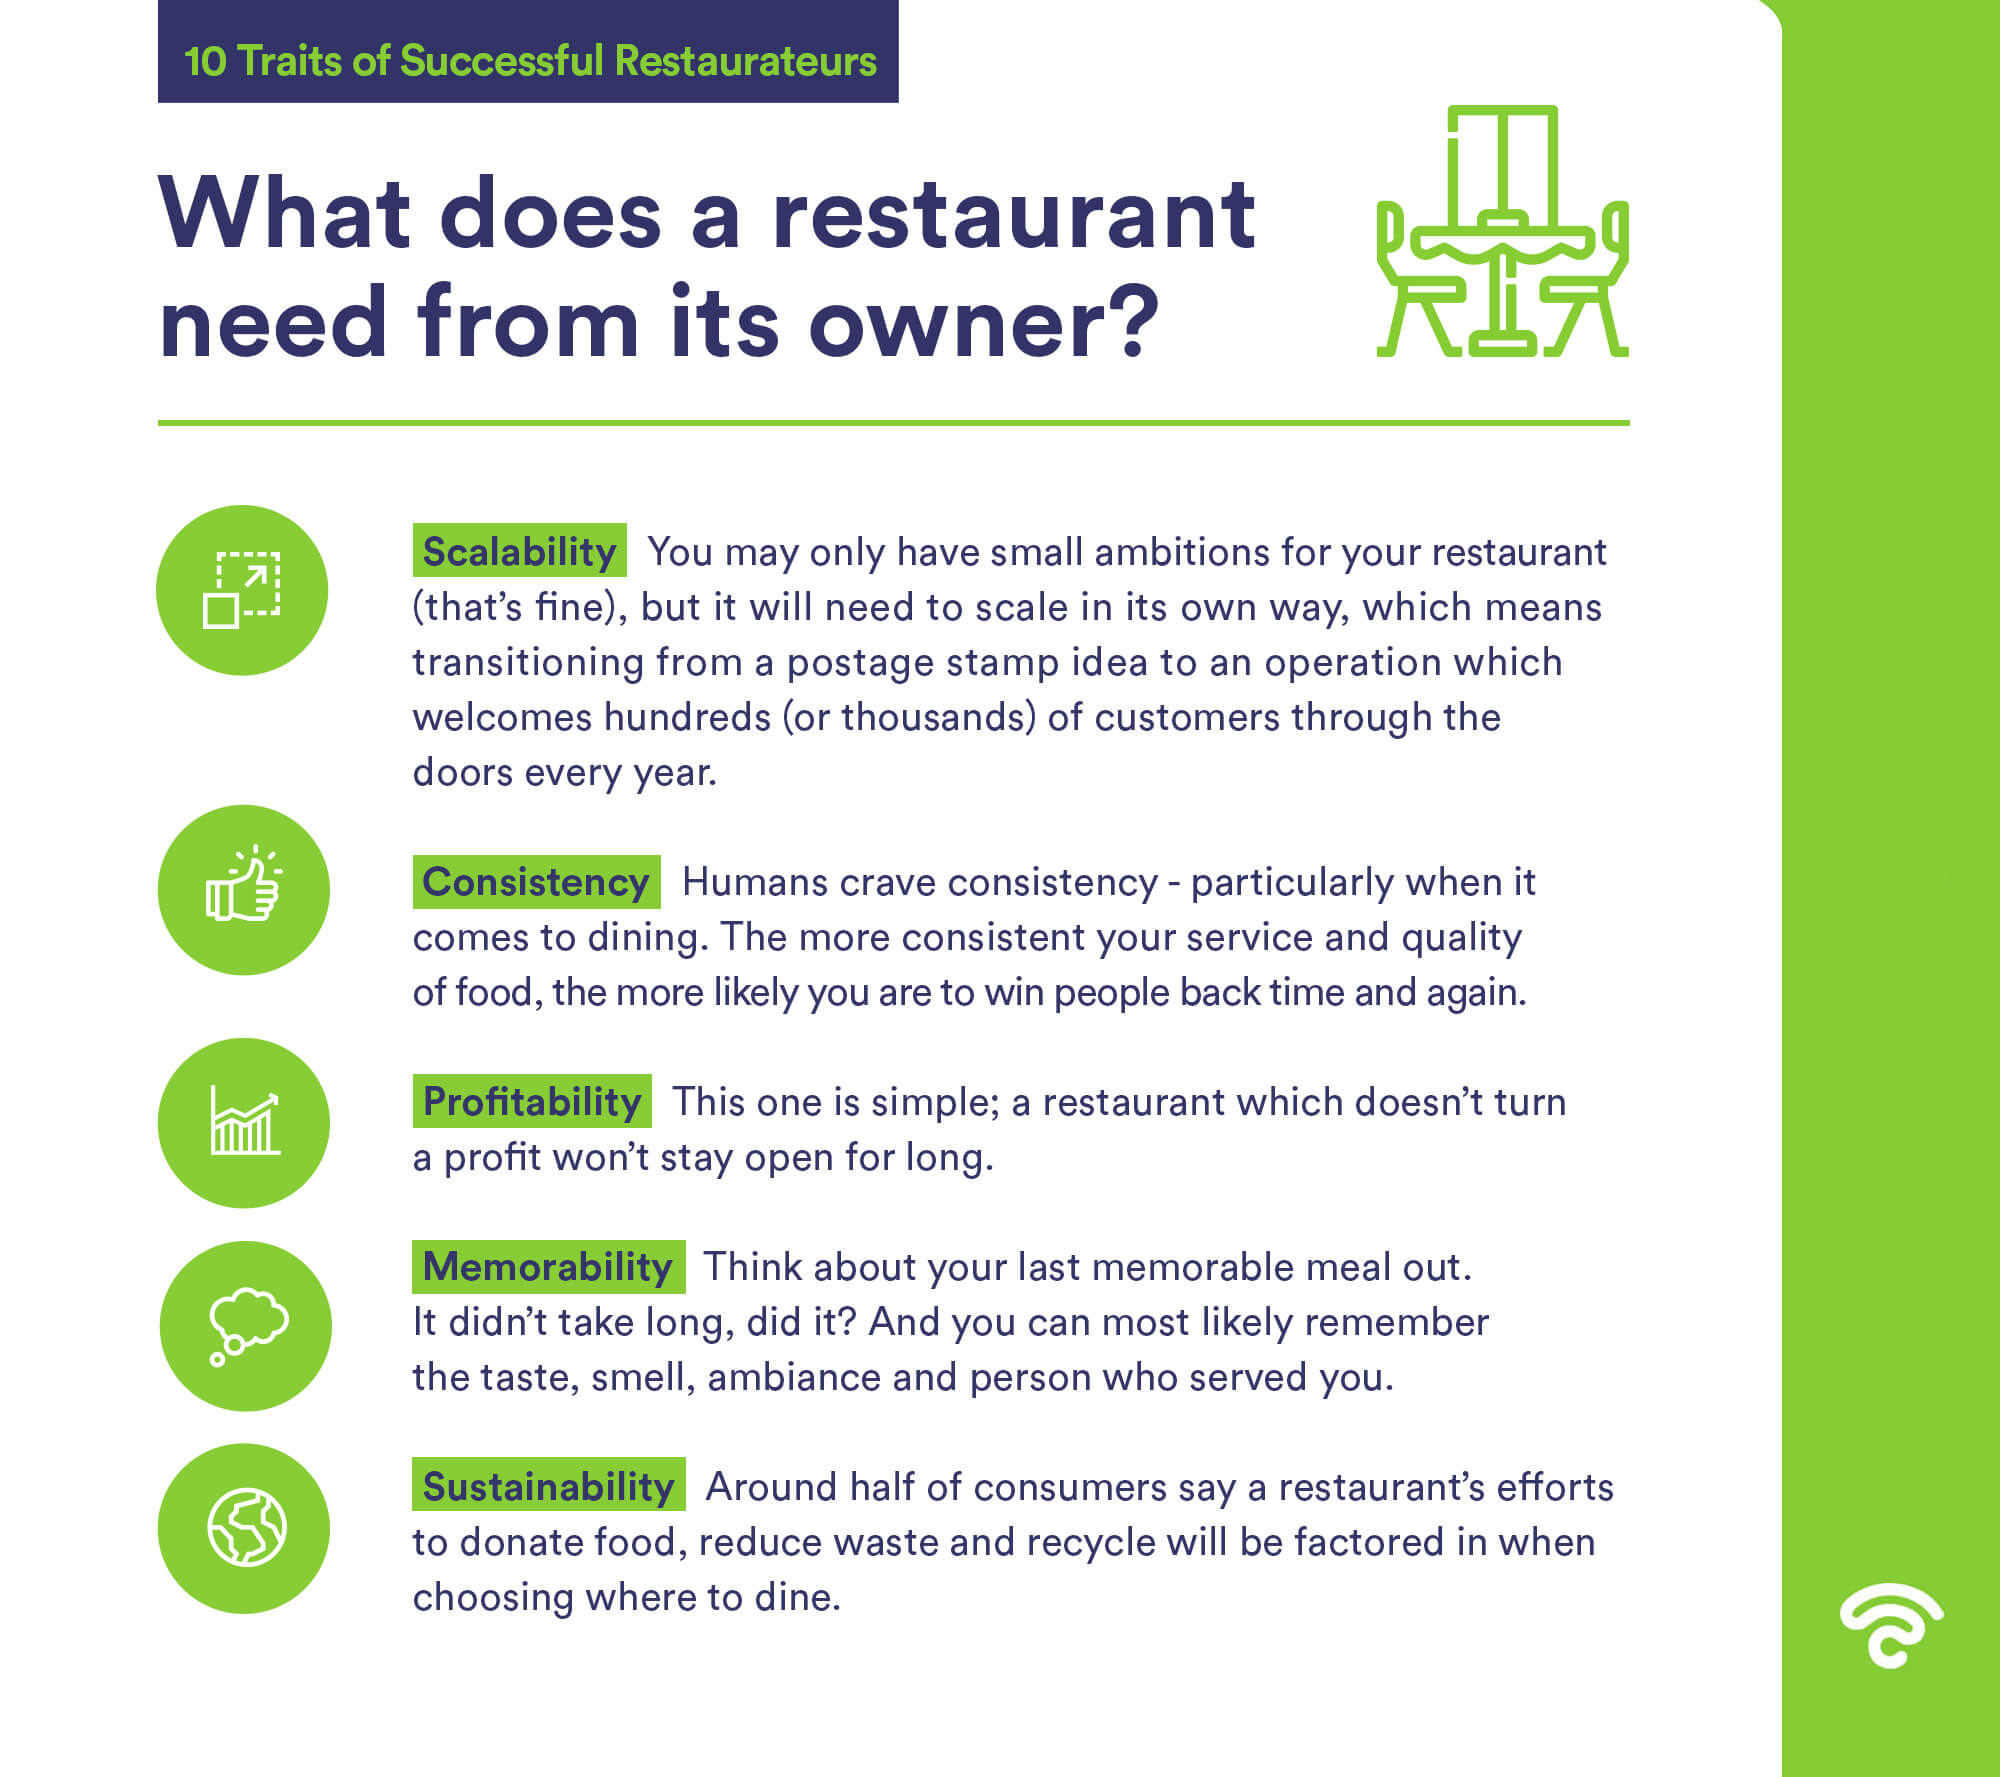 What does a restaurant need